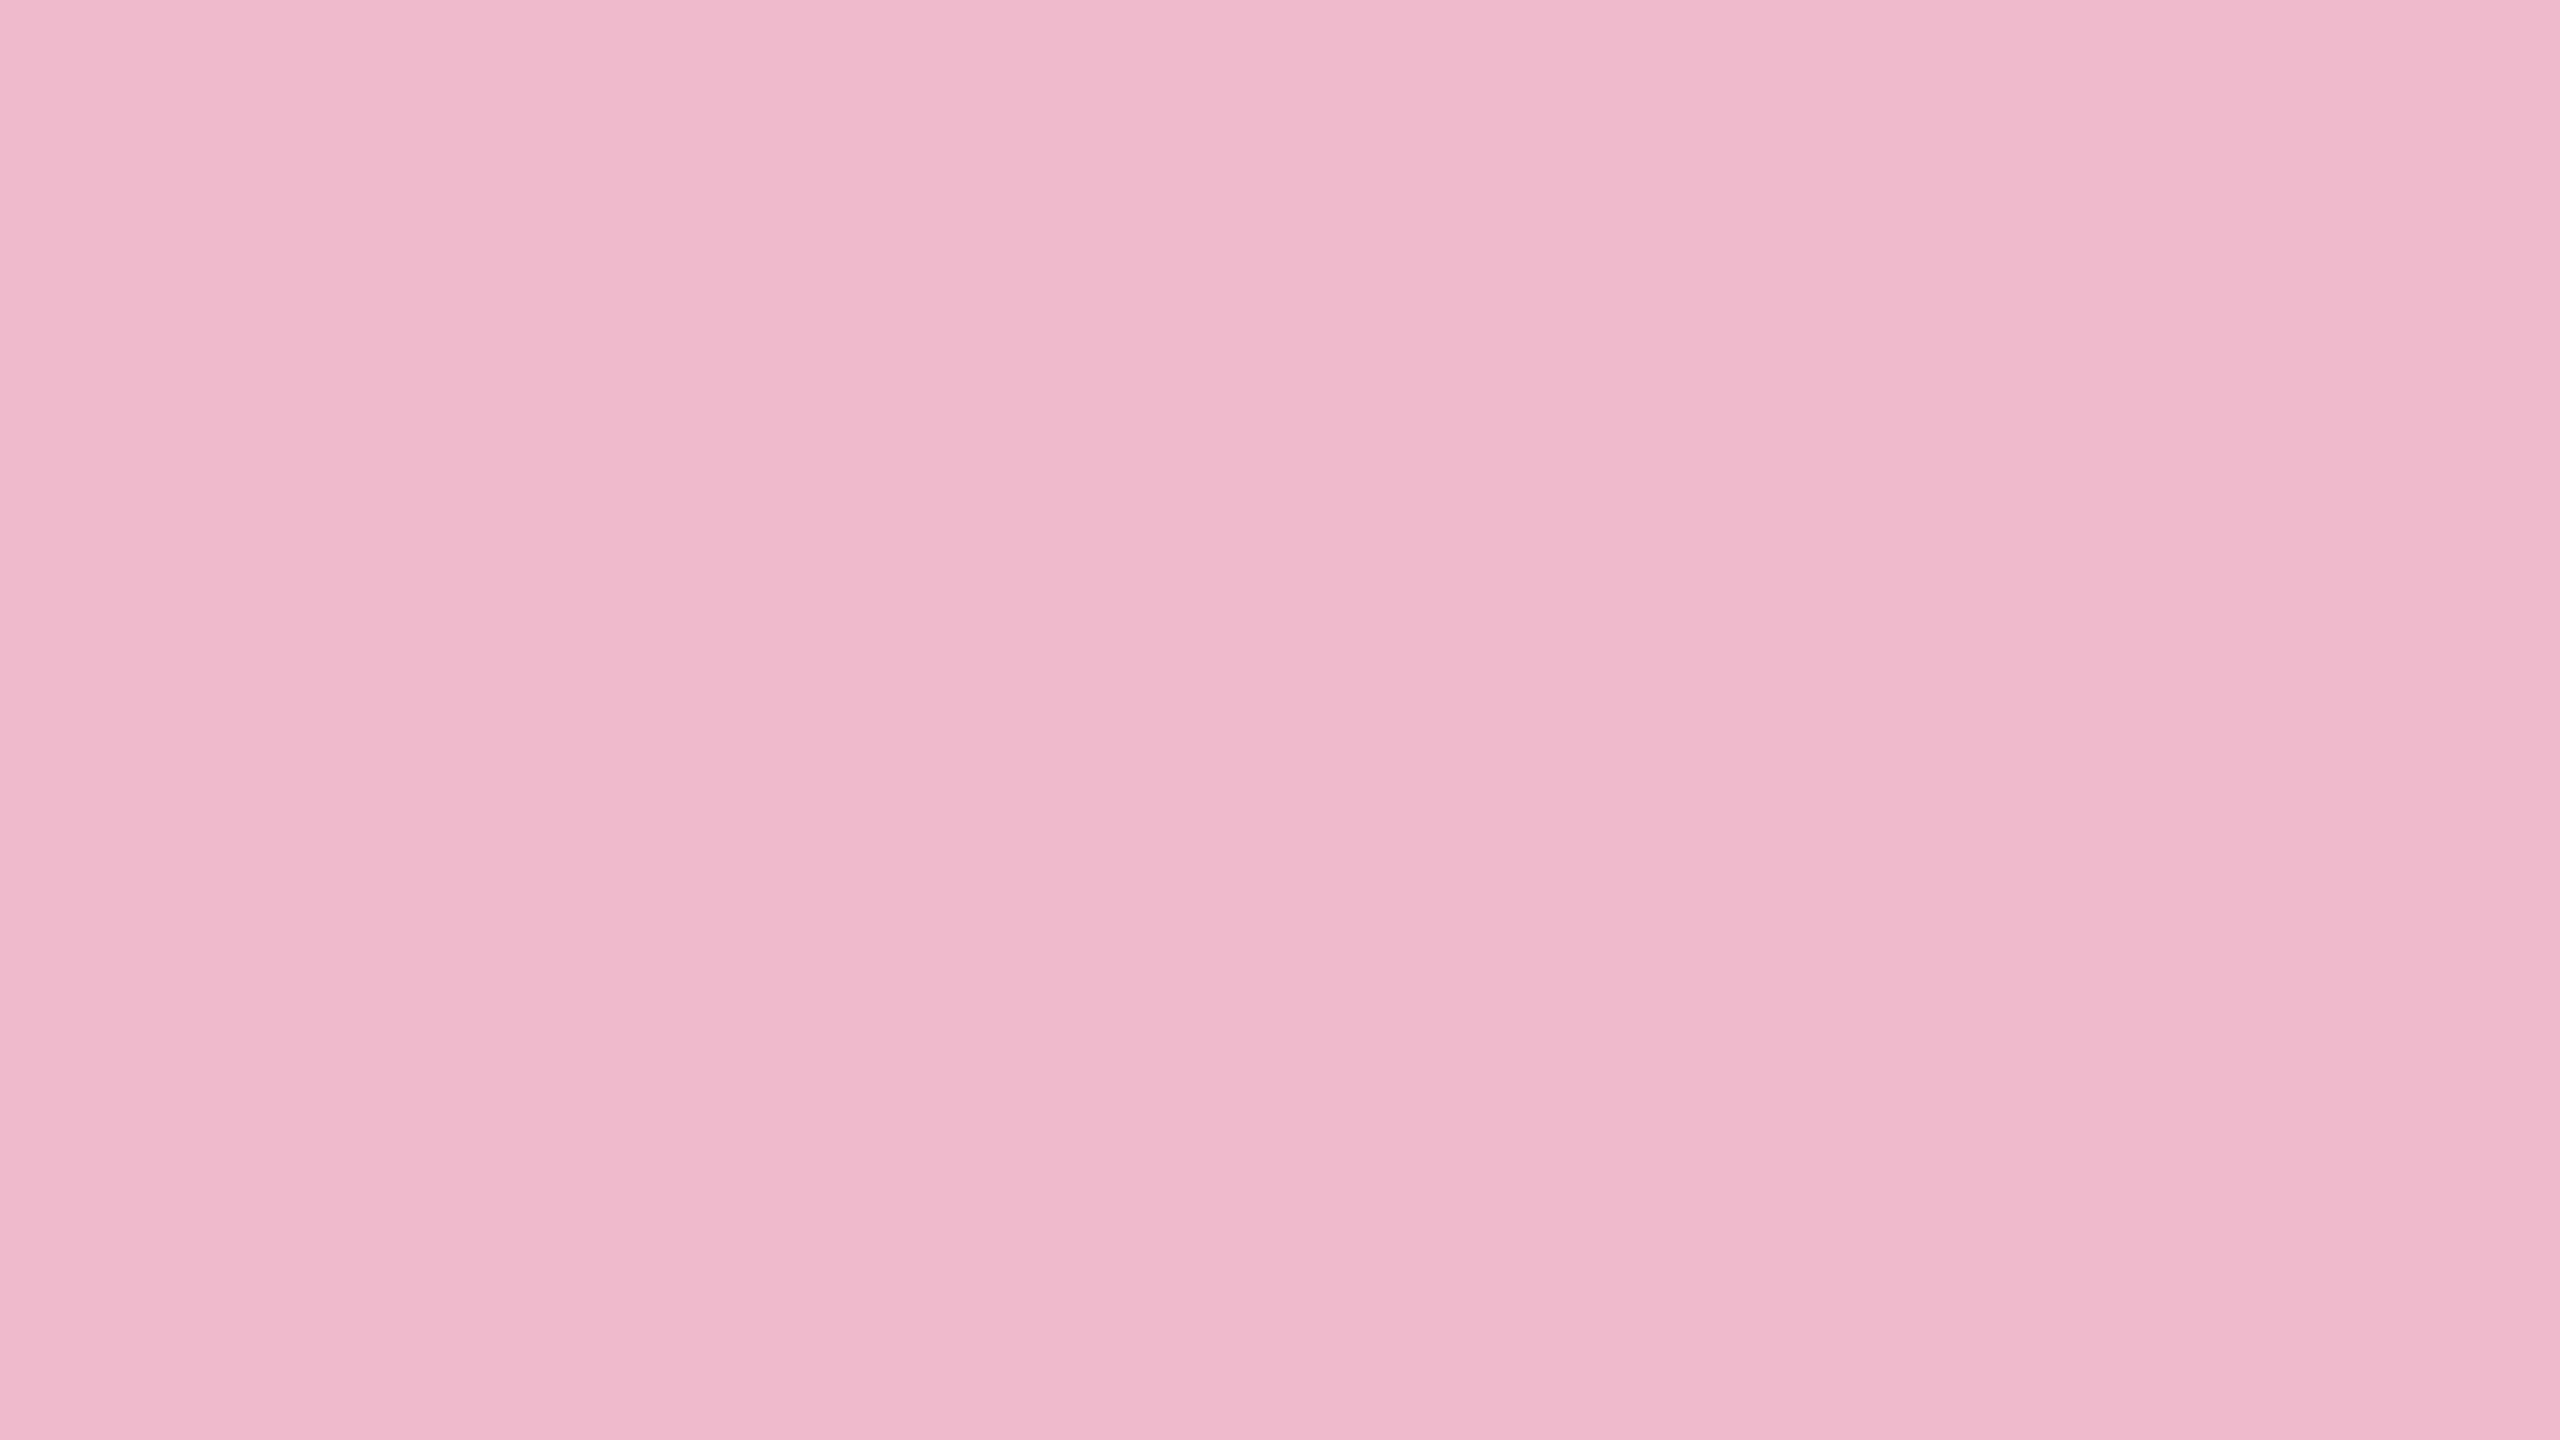 2560x1440 Cameo Pink Solid Color Background